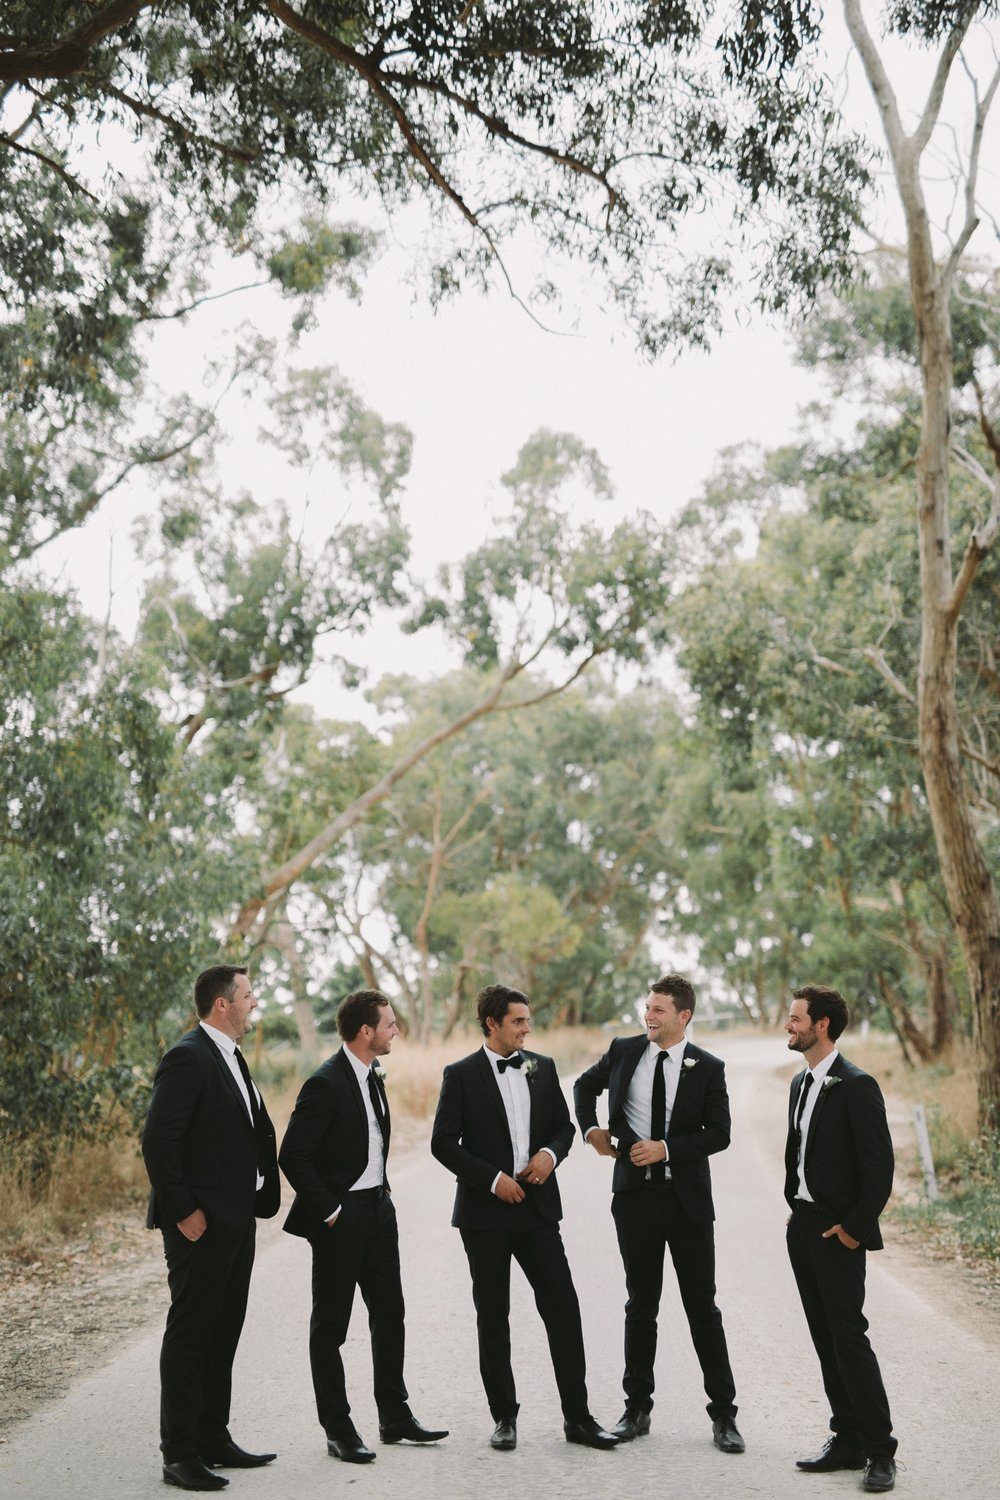 Chloe & Chris - Seasonal Garden Adelaide Wedding - The Seasonal Garden Cafe Hahndorf Wedding - Natural wedding photography in Adelaide - www.katherineschultzphotography.com_0062.jpg